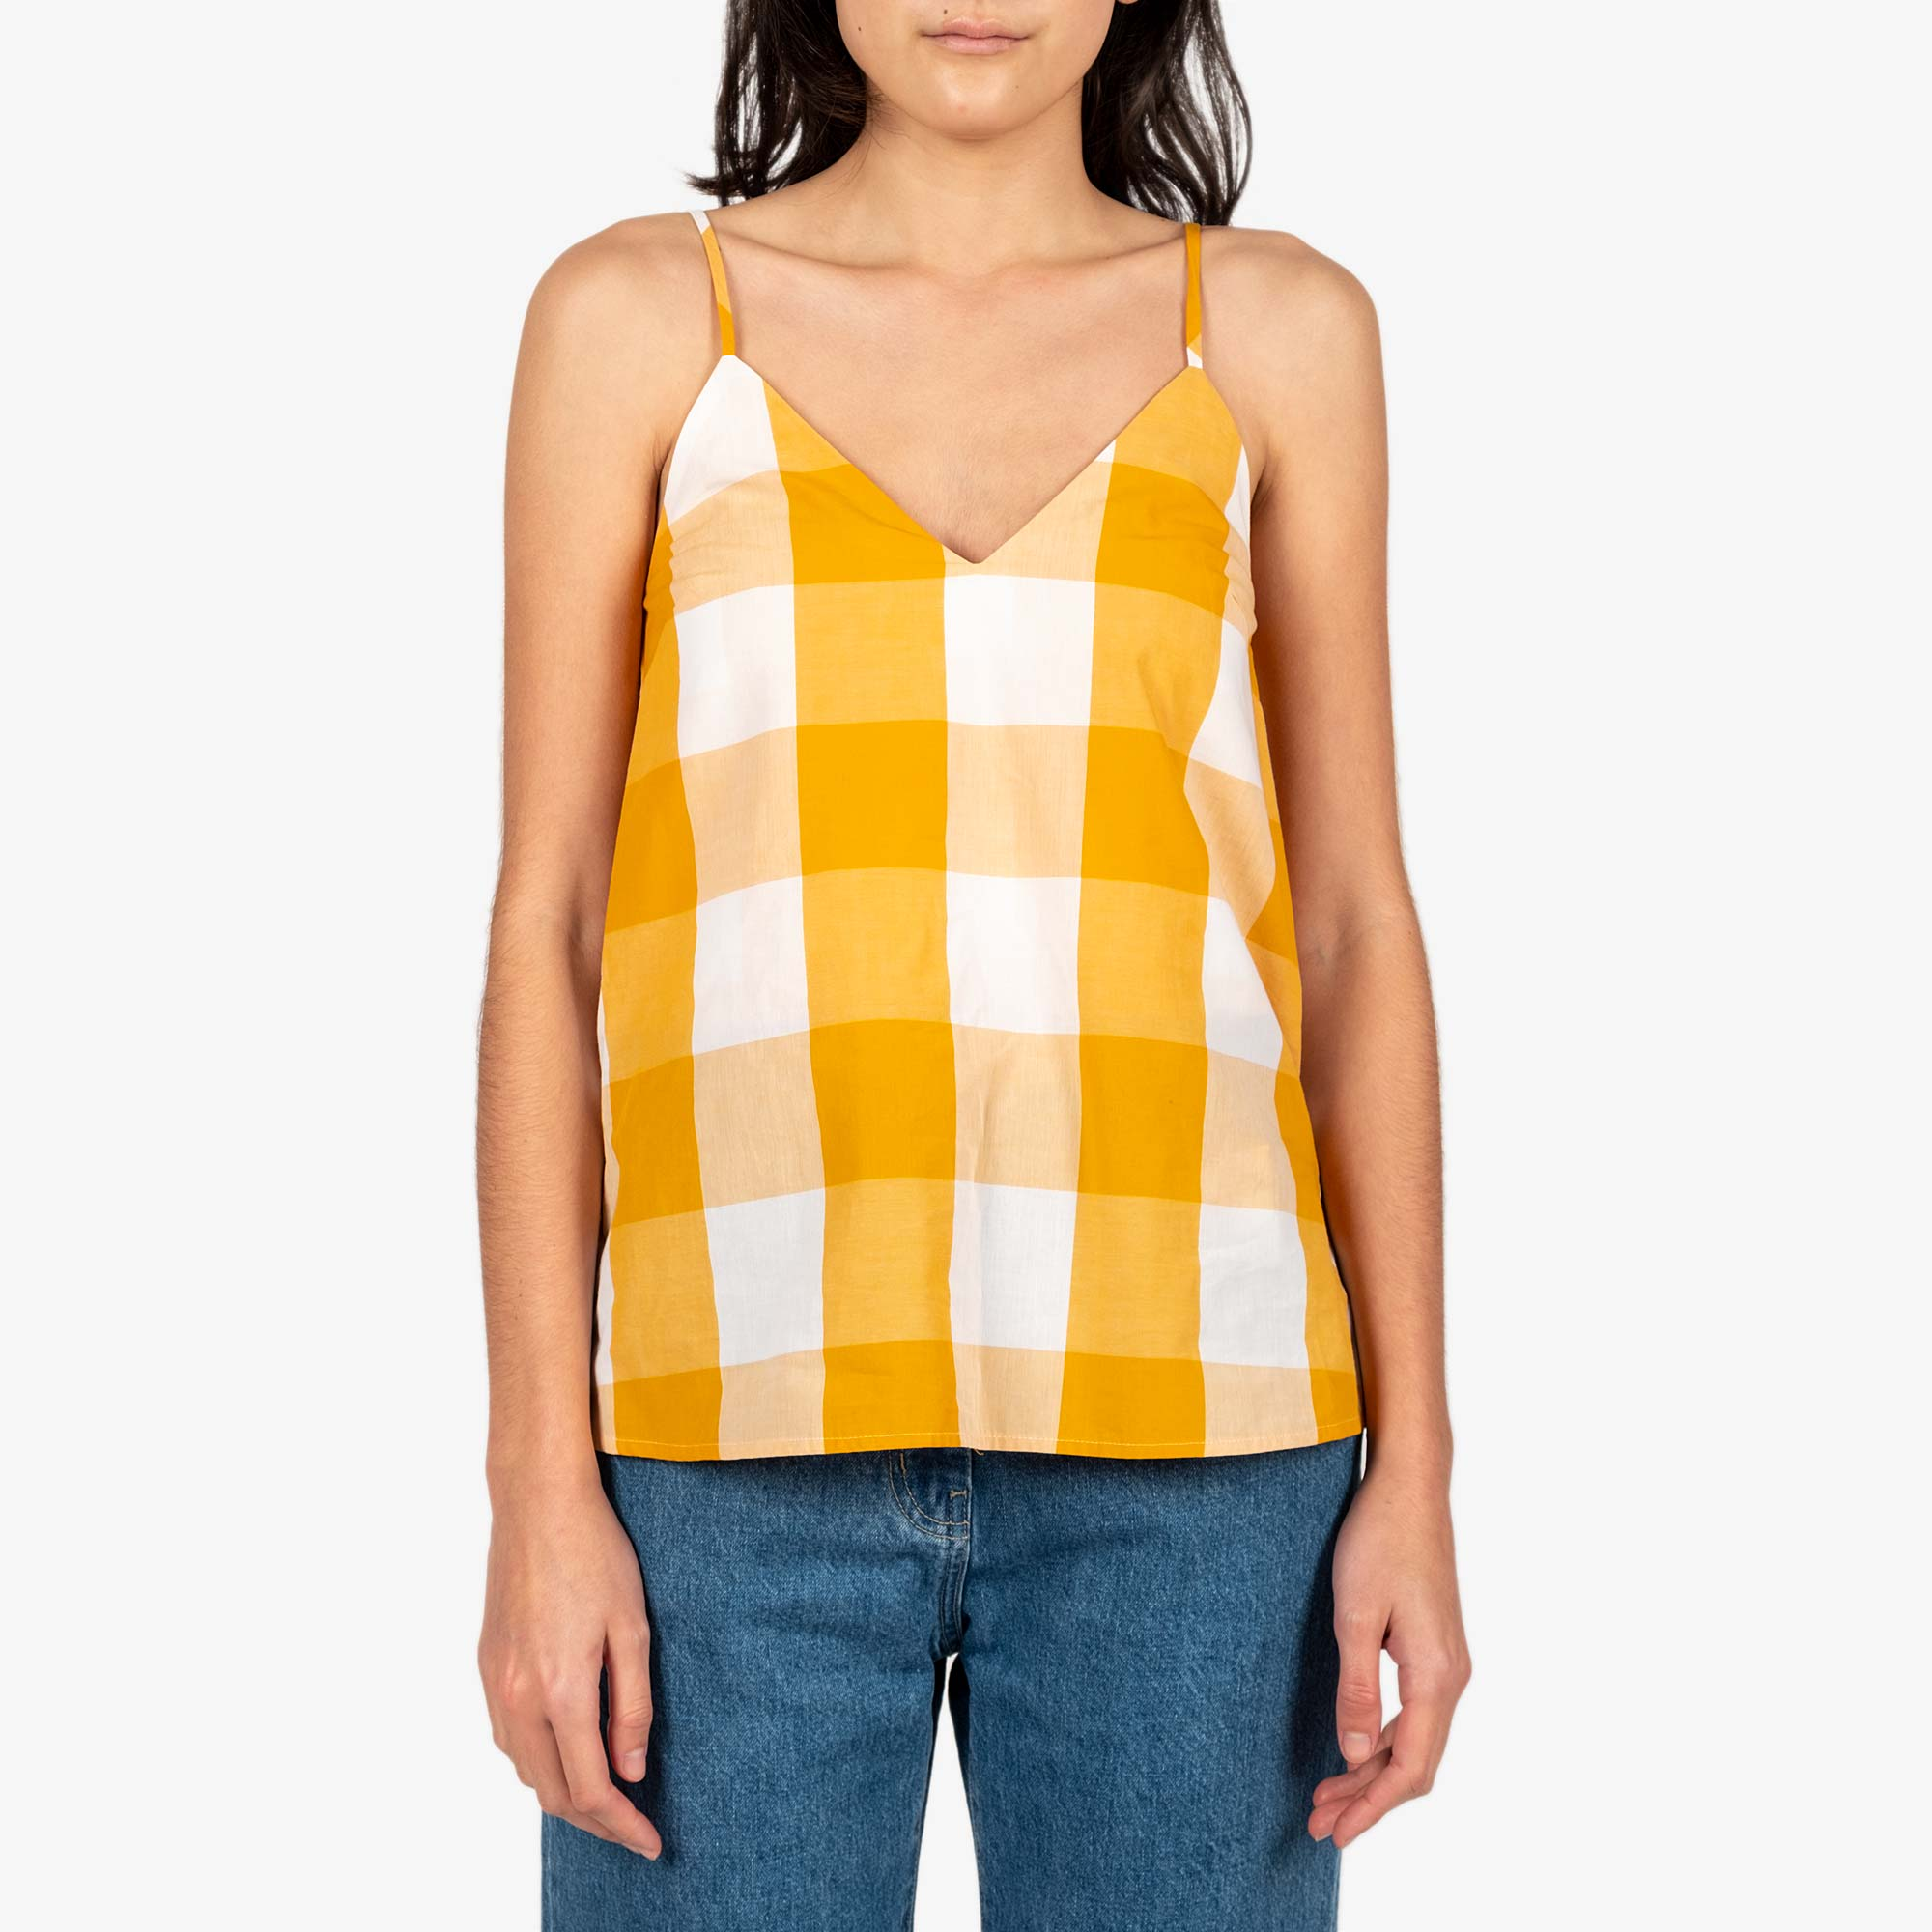 Kowtow Stencil Top - Daisy Check 1